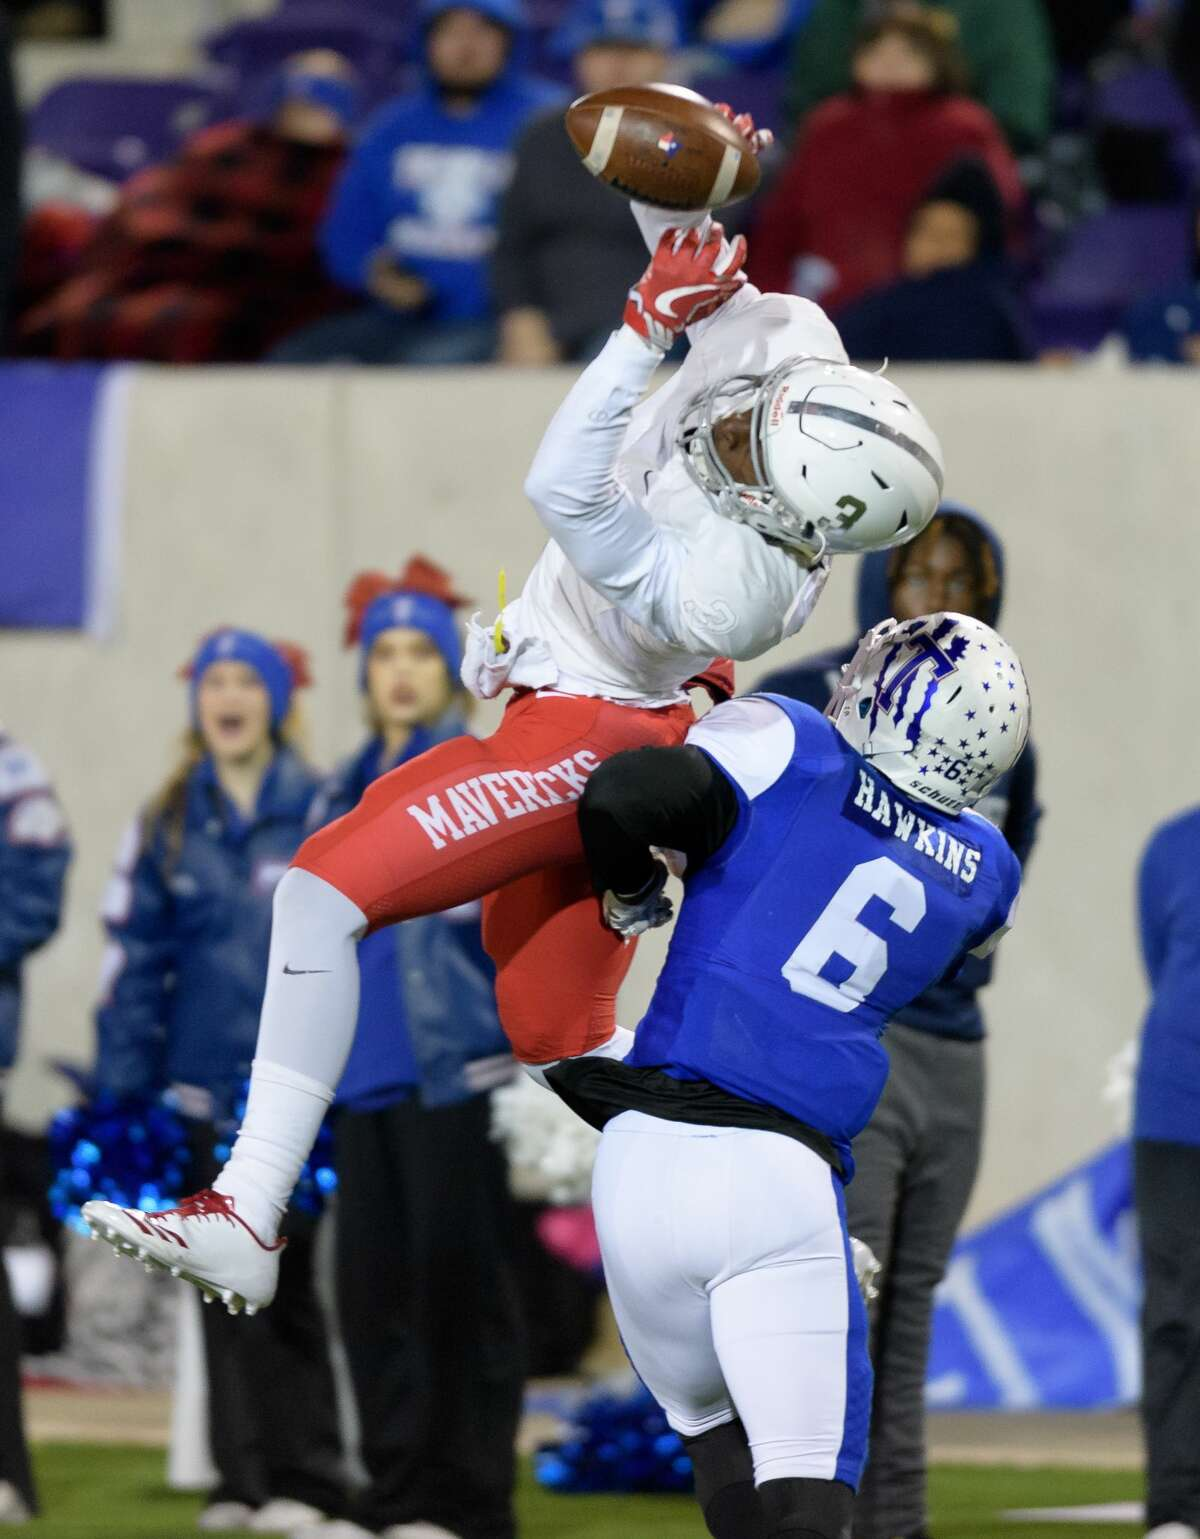 Terrence Norman Jr. (3) of the Manvel Mavericks attempts a reception in the second half against the Temple Wildcats in a high school football game on Friday, December 8, 2017 at Blackshear Field at Prairie View A&M University.